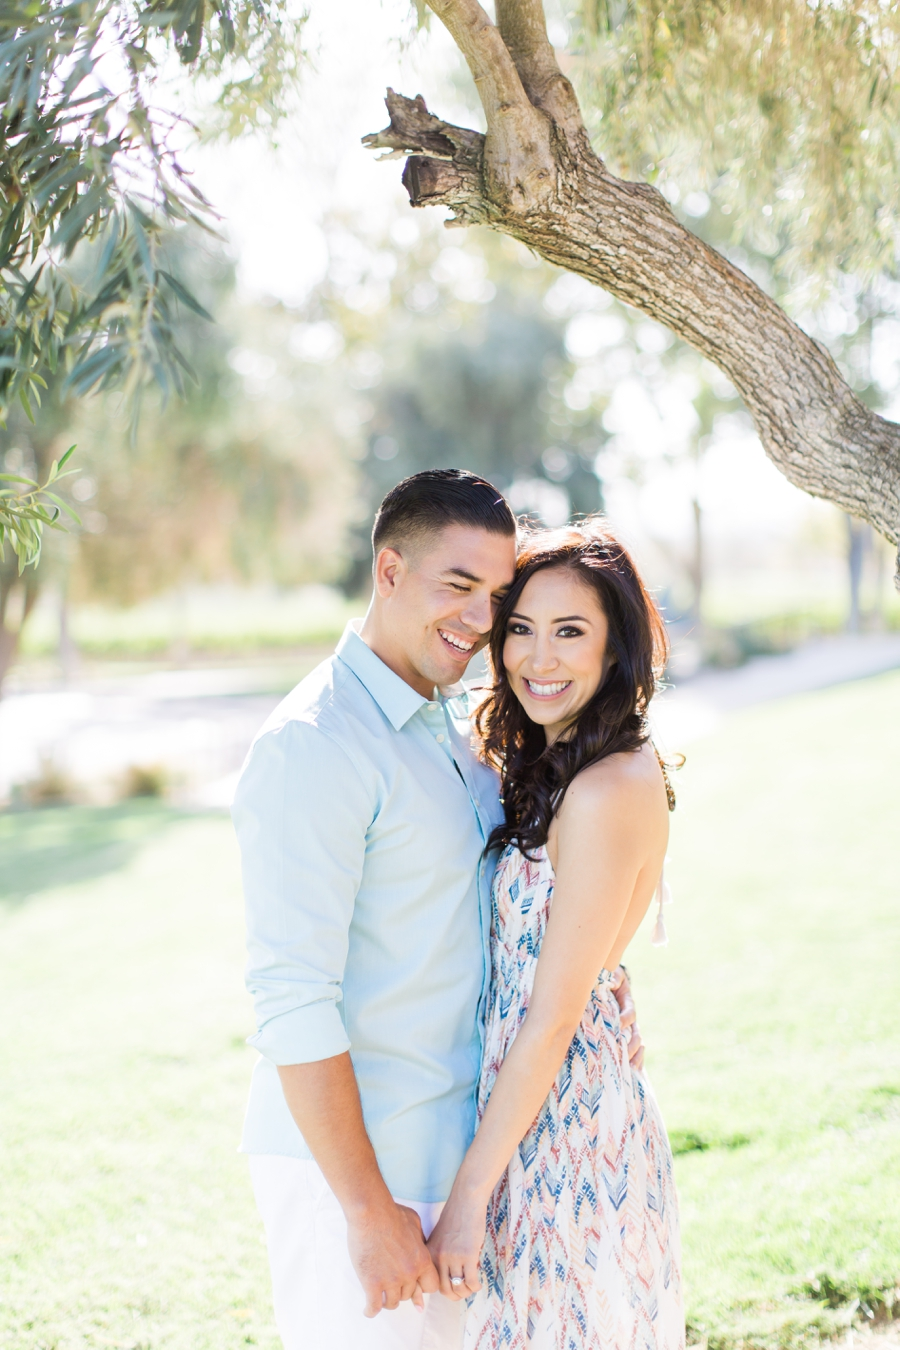 Taylor_Kinzie_Photography_Santa_Barbara_Engagement_Photography_0111